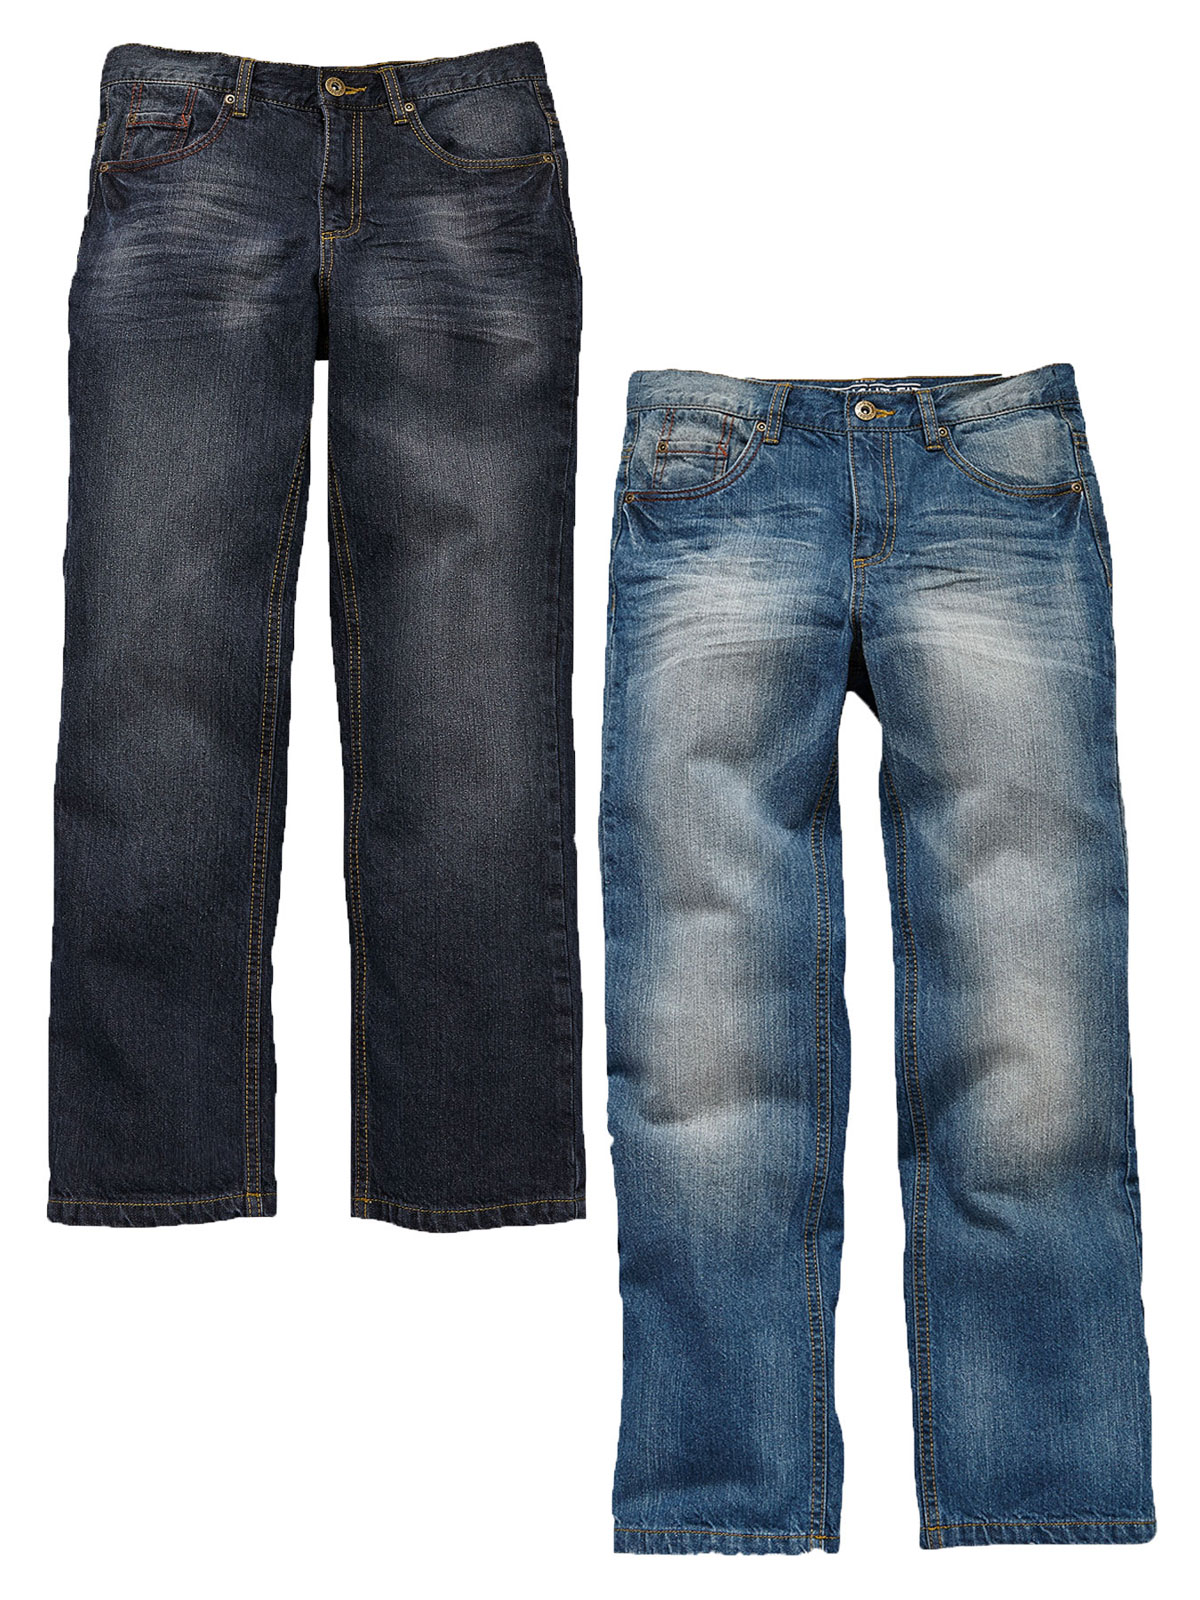 Demo Pack of Two Jeans